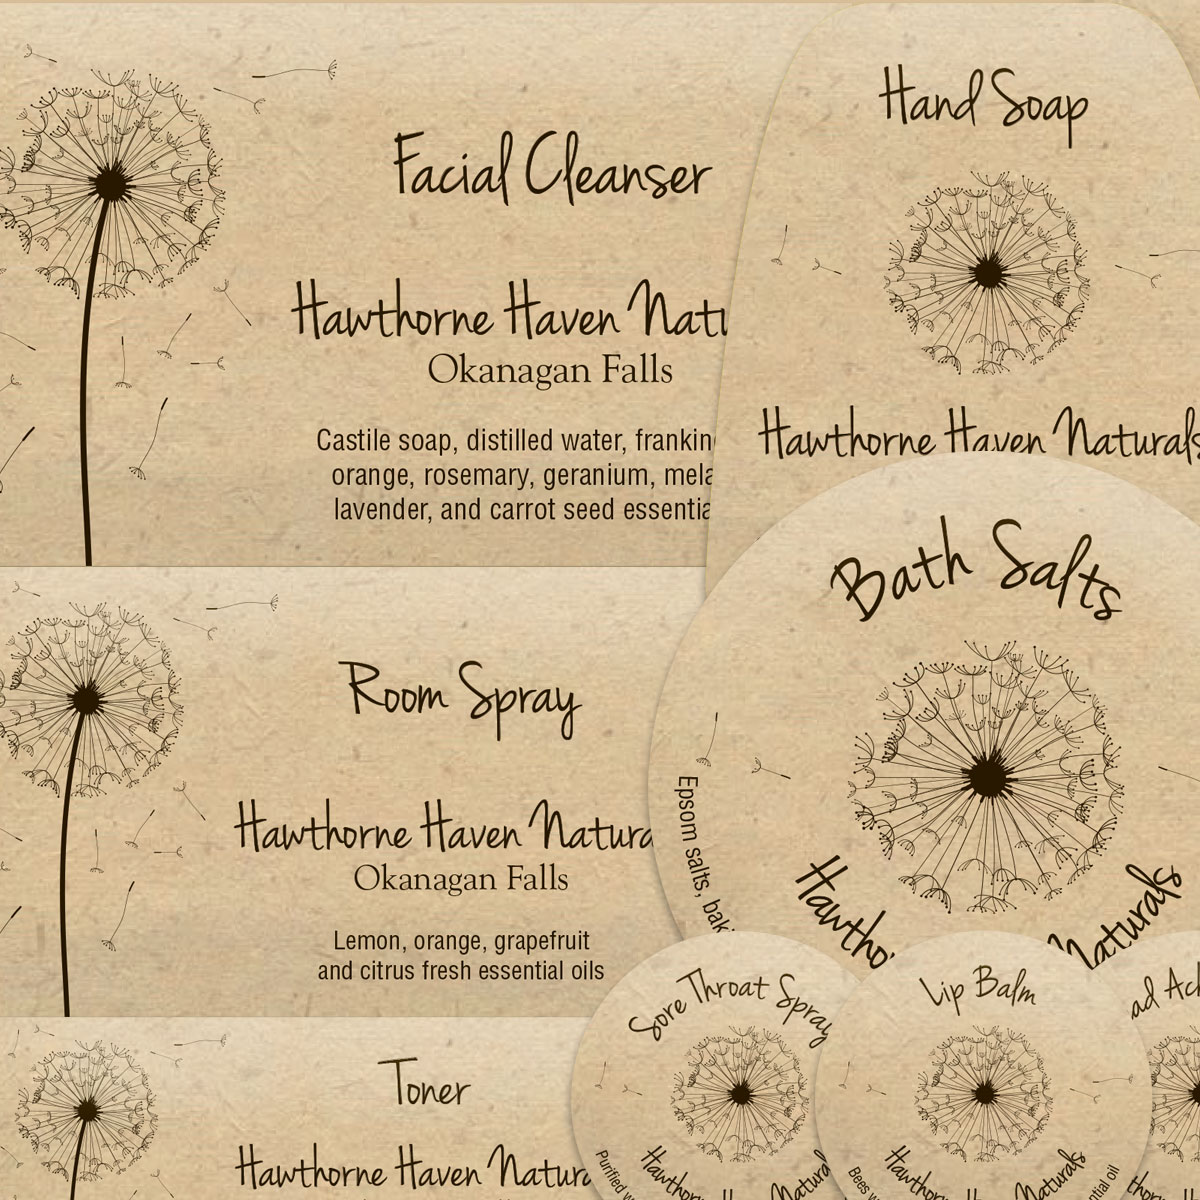 Hawthorne Haven Naturals labels